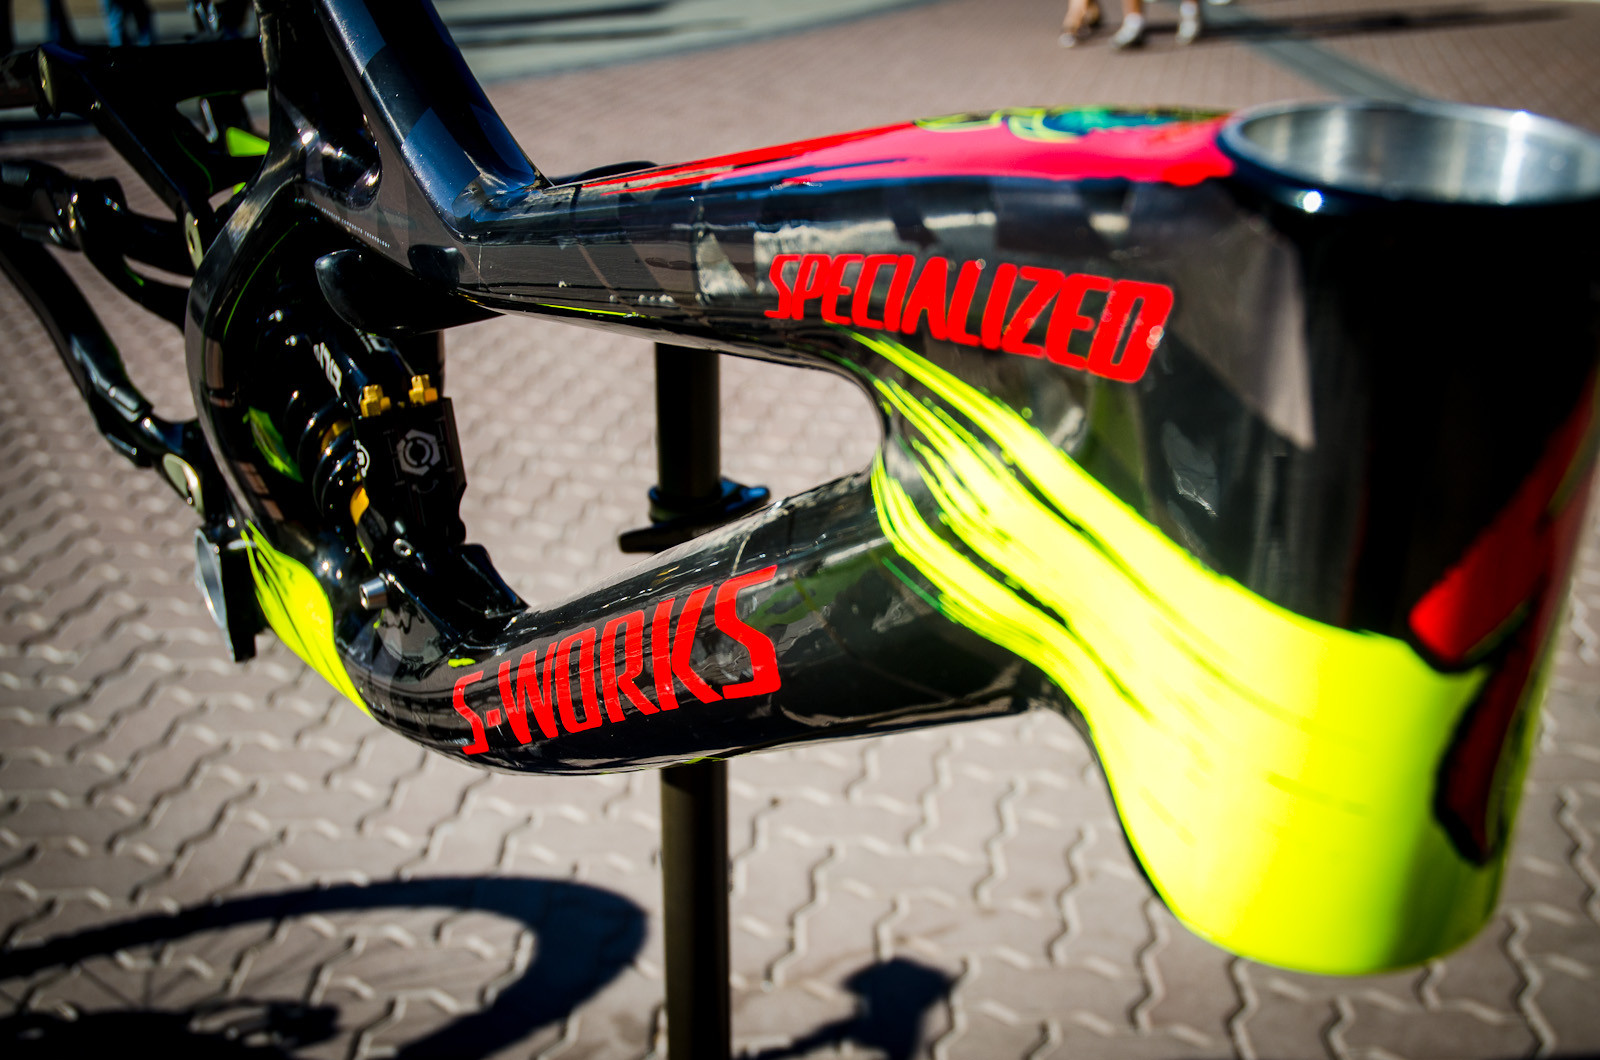 Top Of The Line - First Look: Limited Edition 2013 Specialized / Troy Lee Designs Frames - Mountain Biking Pictures - Vital MTB